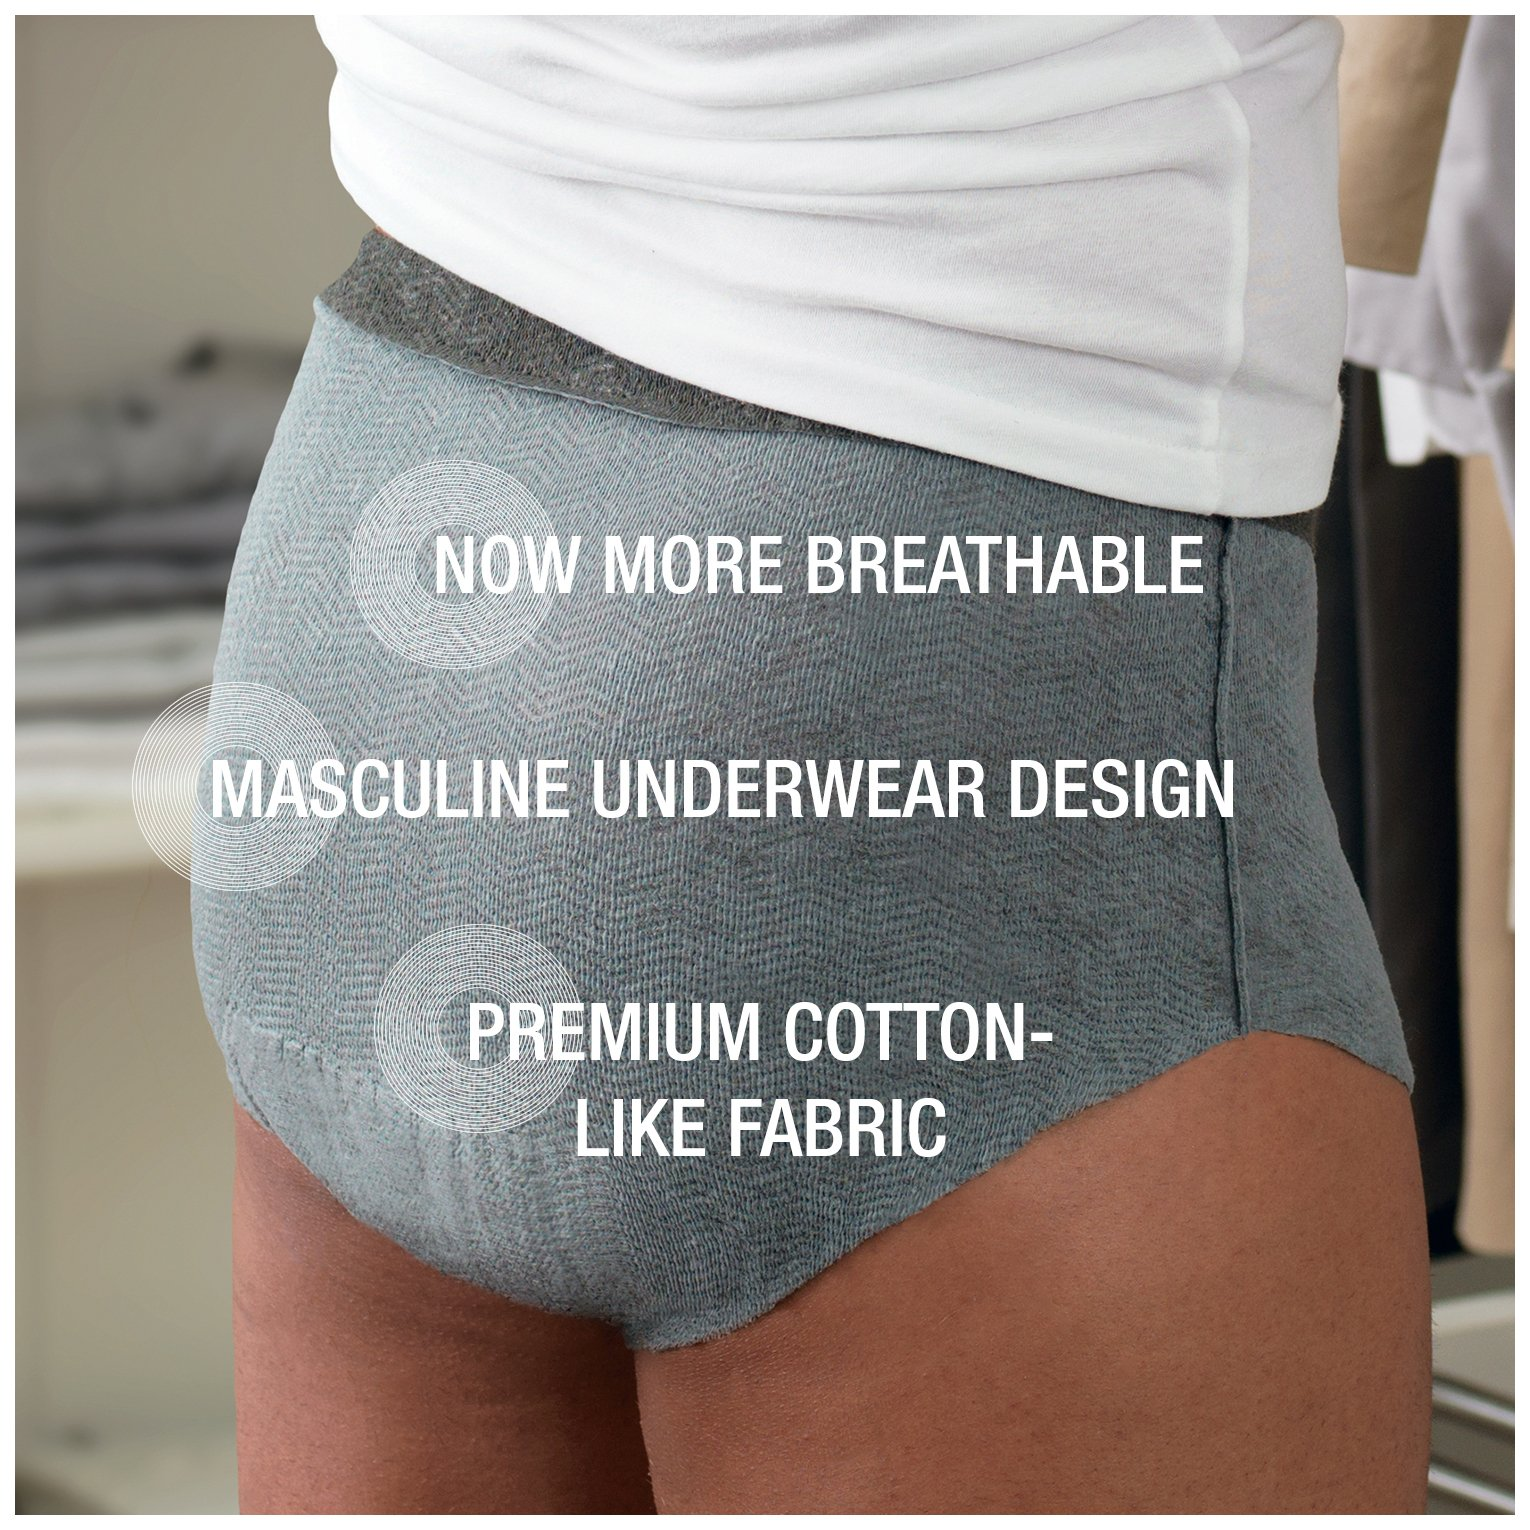 Depend Real Fit Incontinence Briefs for Men, Maximum Absorbency, S/M, Grey by Depend (Image #3)